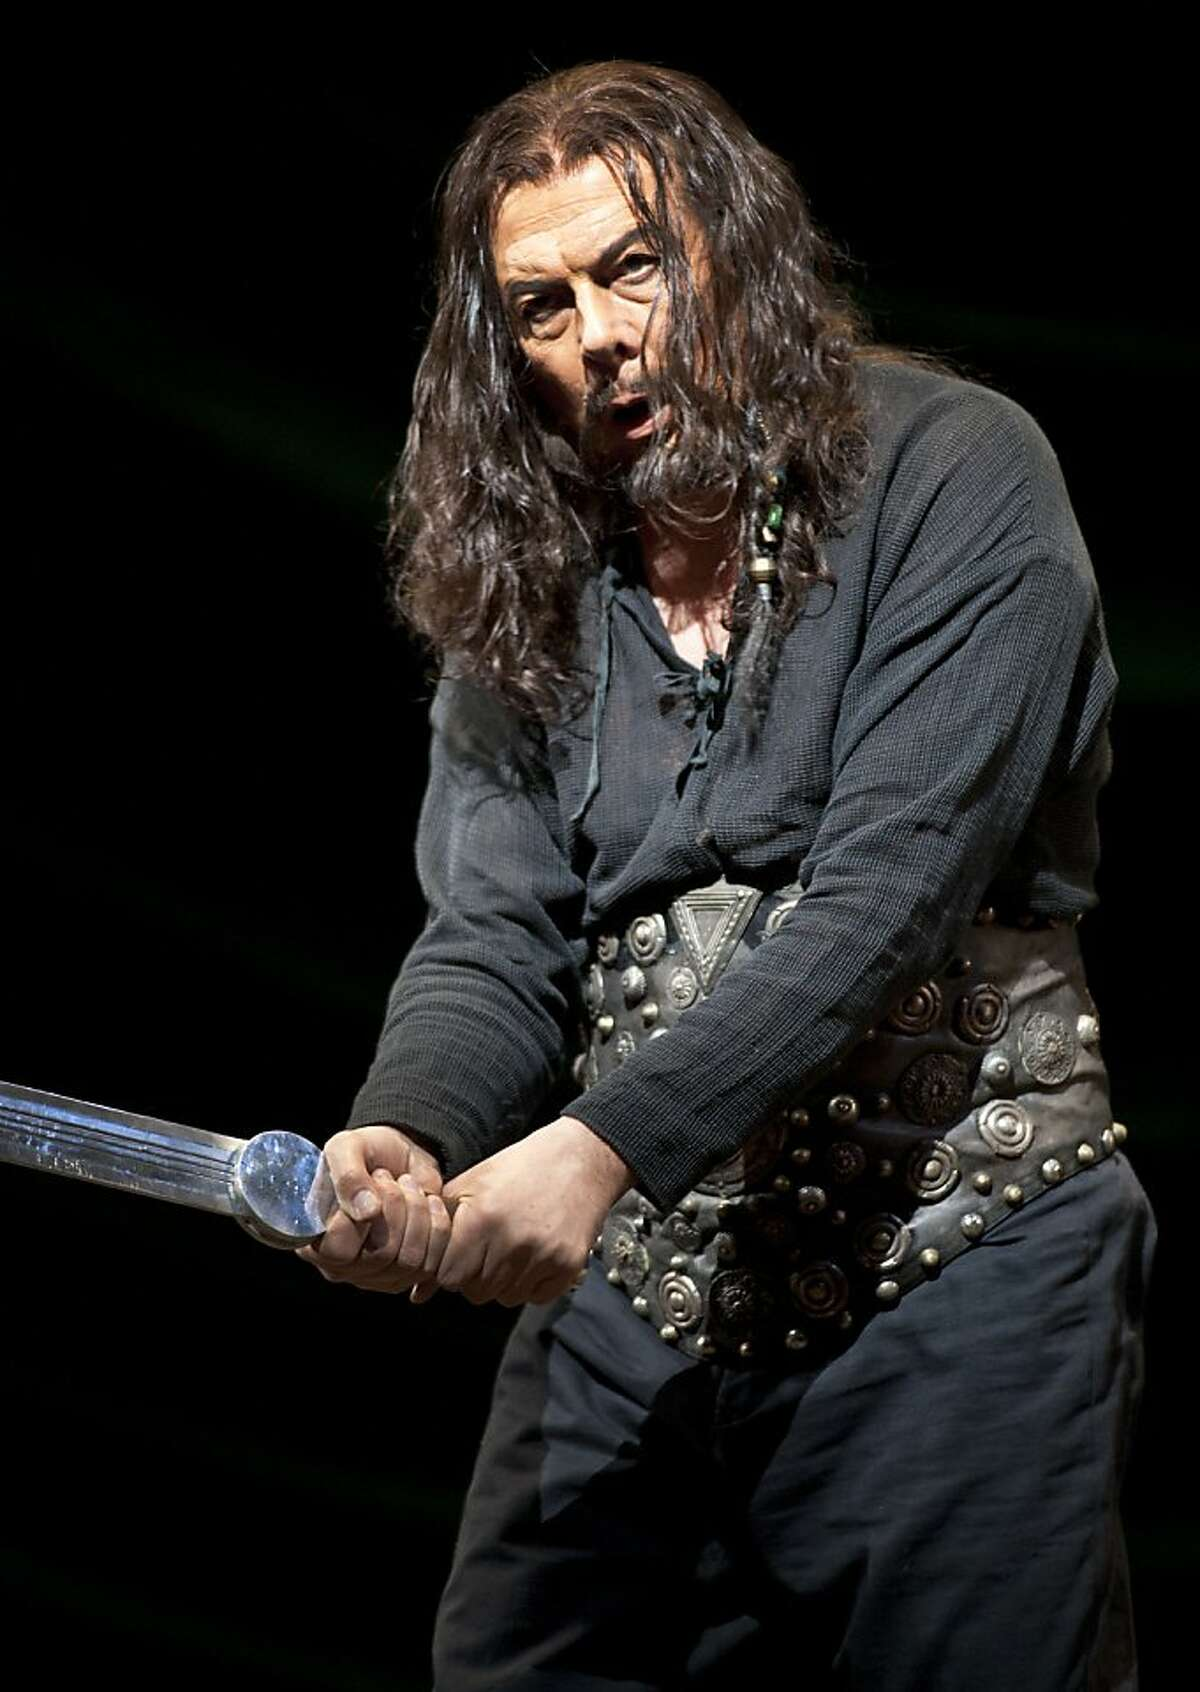 Attila, King of the Huns, played by Ferruccio Furlanetto holds up a sword as he sings at the front of the stage during the production of Attila. San Francisco's Opera season continues with